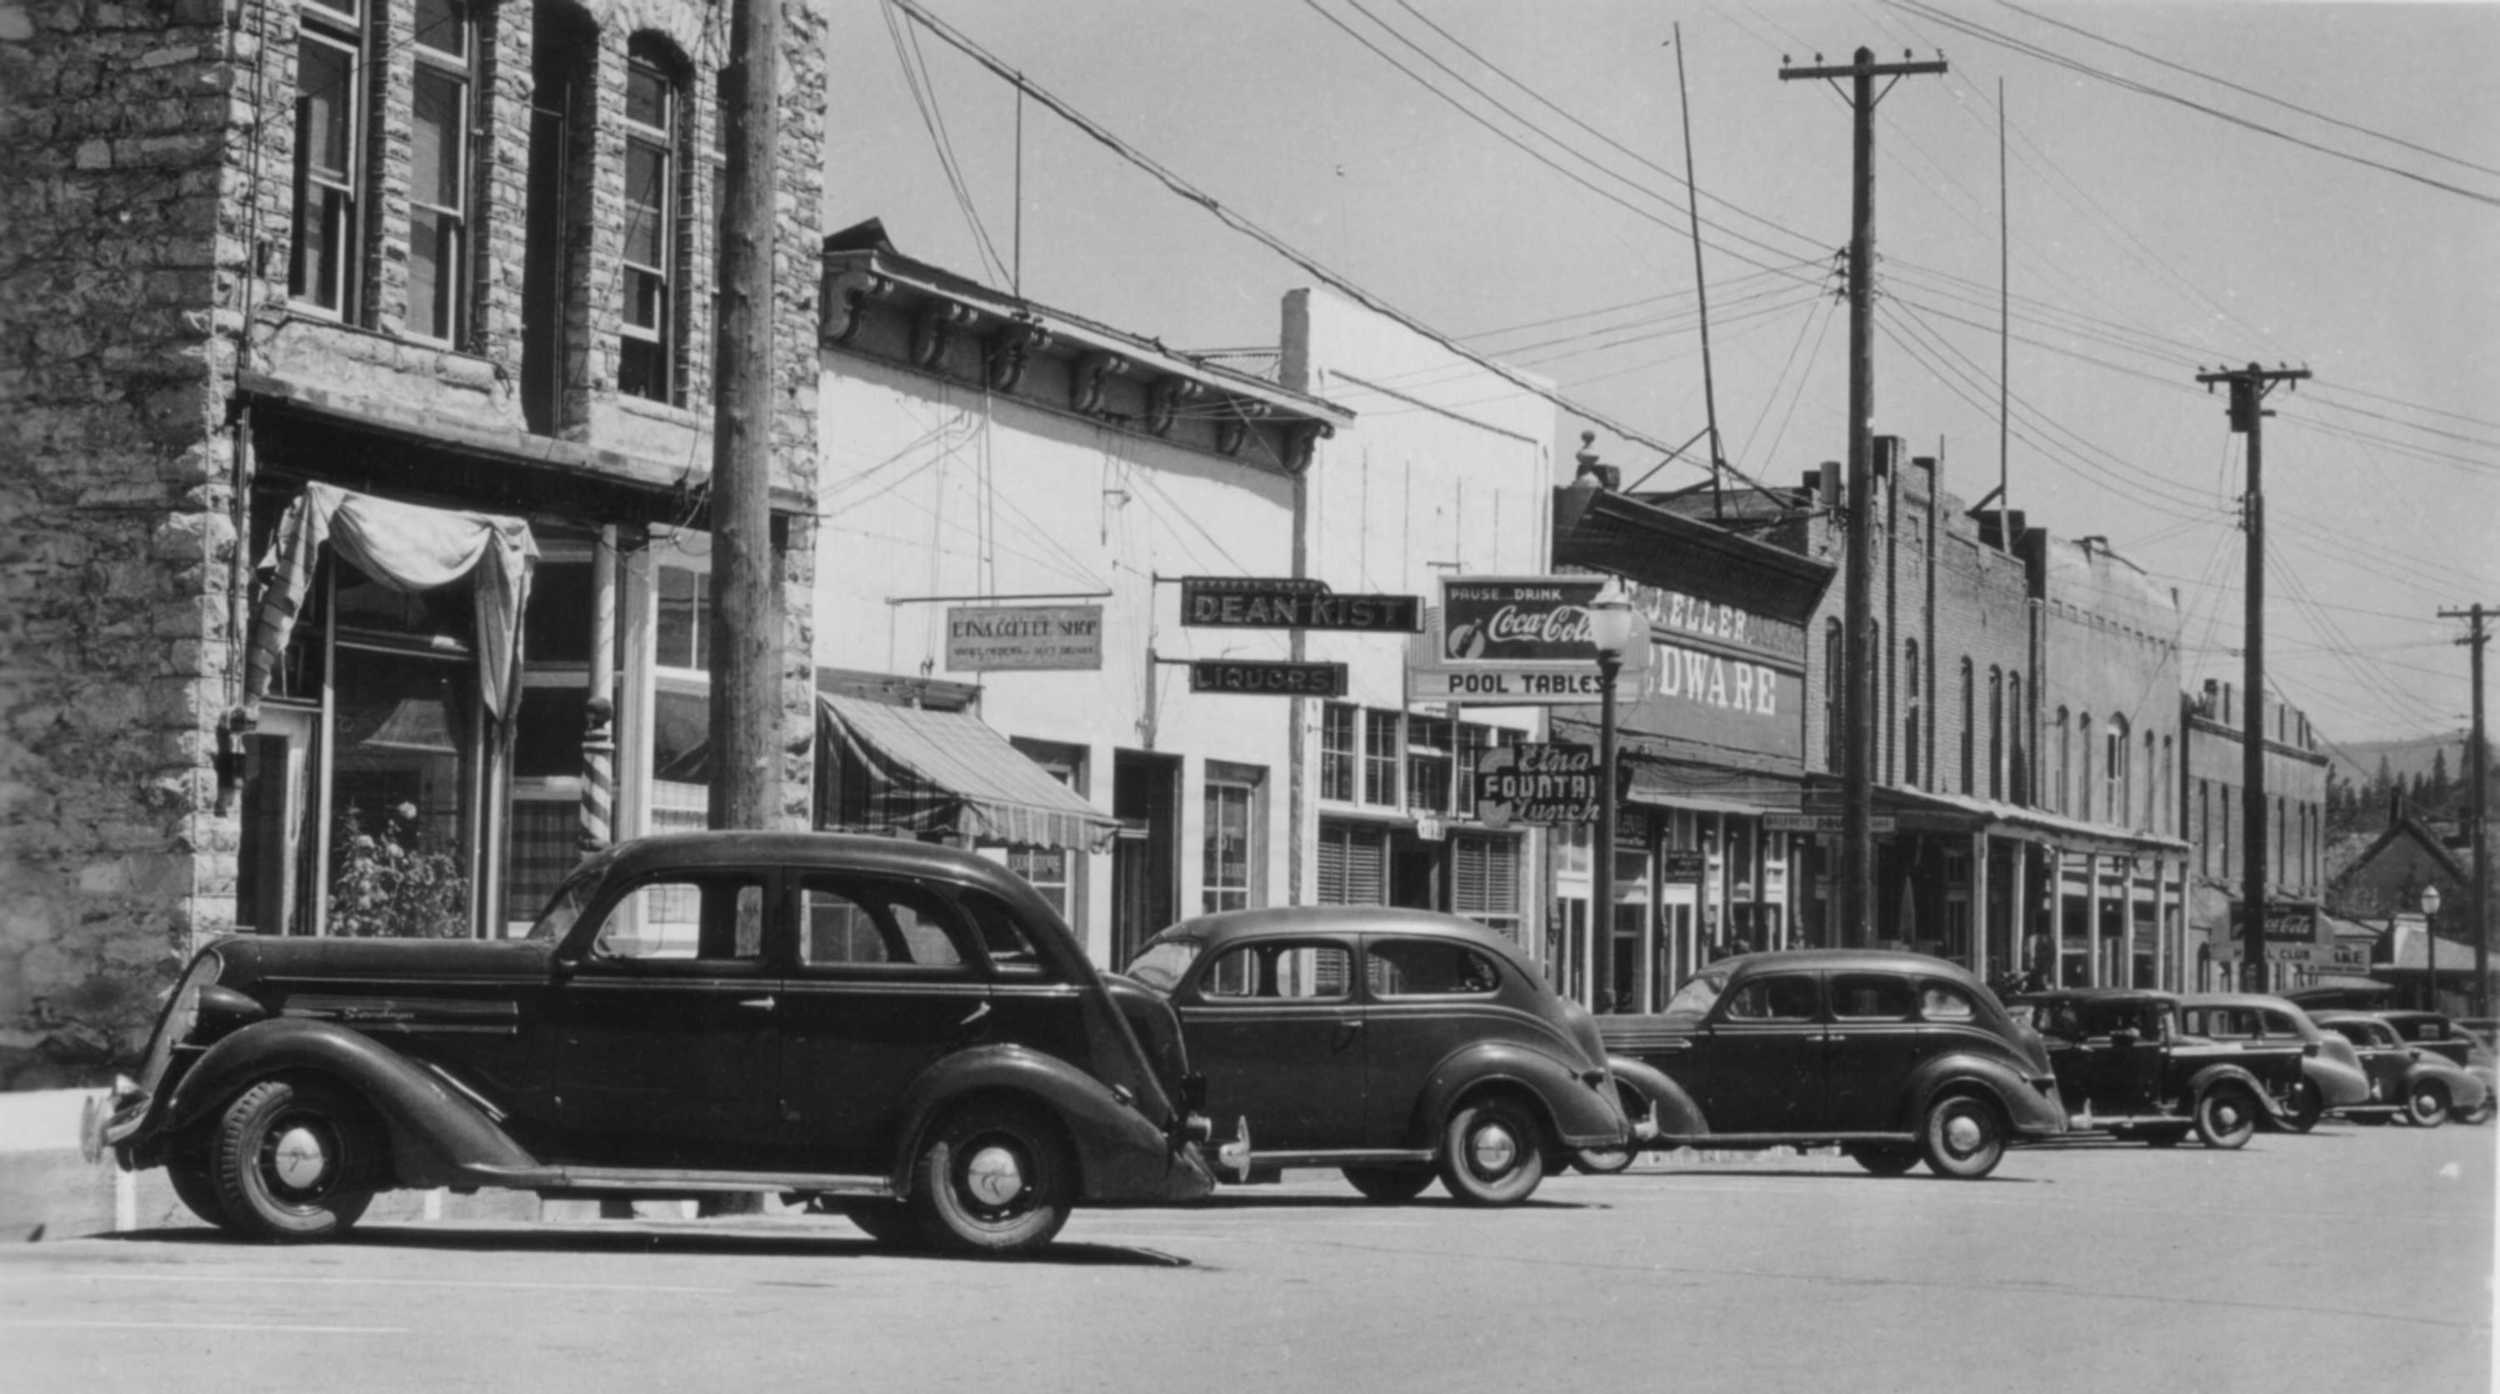 EtnaDowntown.EastmanPhoto.O'photo.c.1940s.jpg